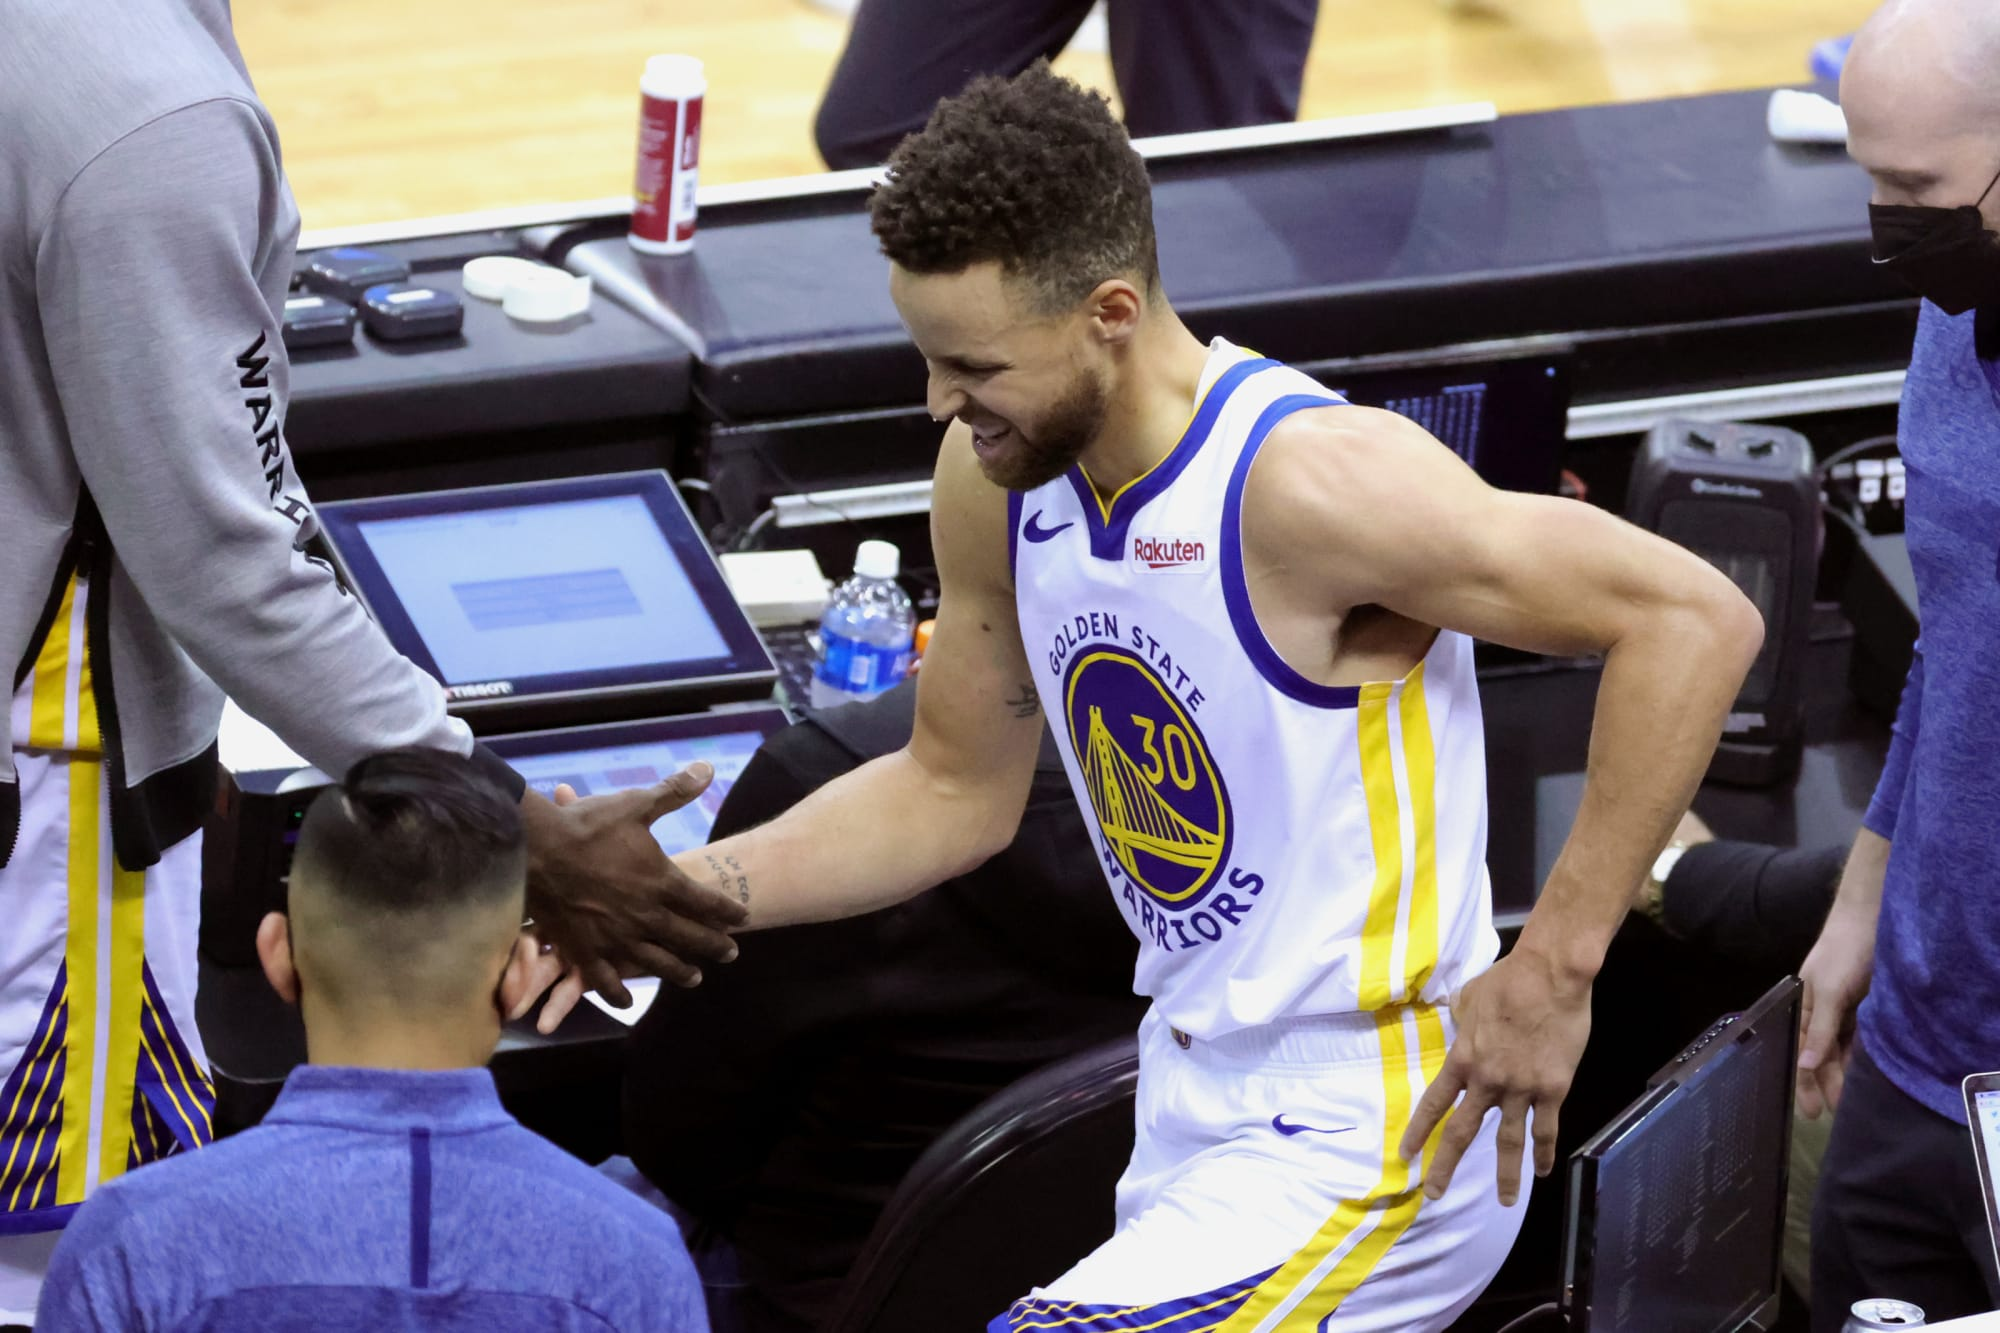 Warriors: Steph Curry showed up to Saturday night's game with a cane (Video) - FanSided